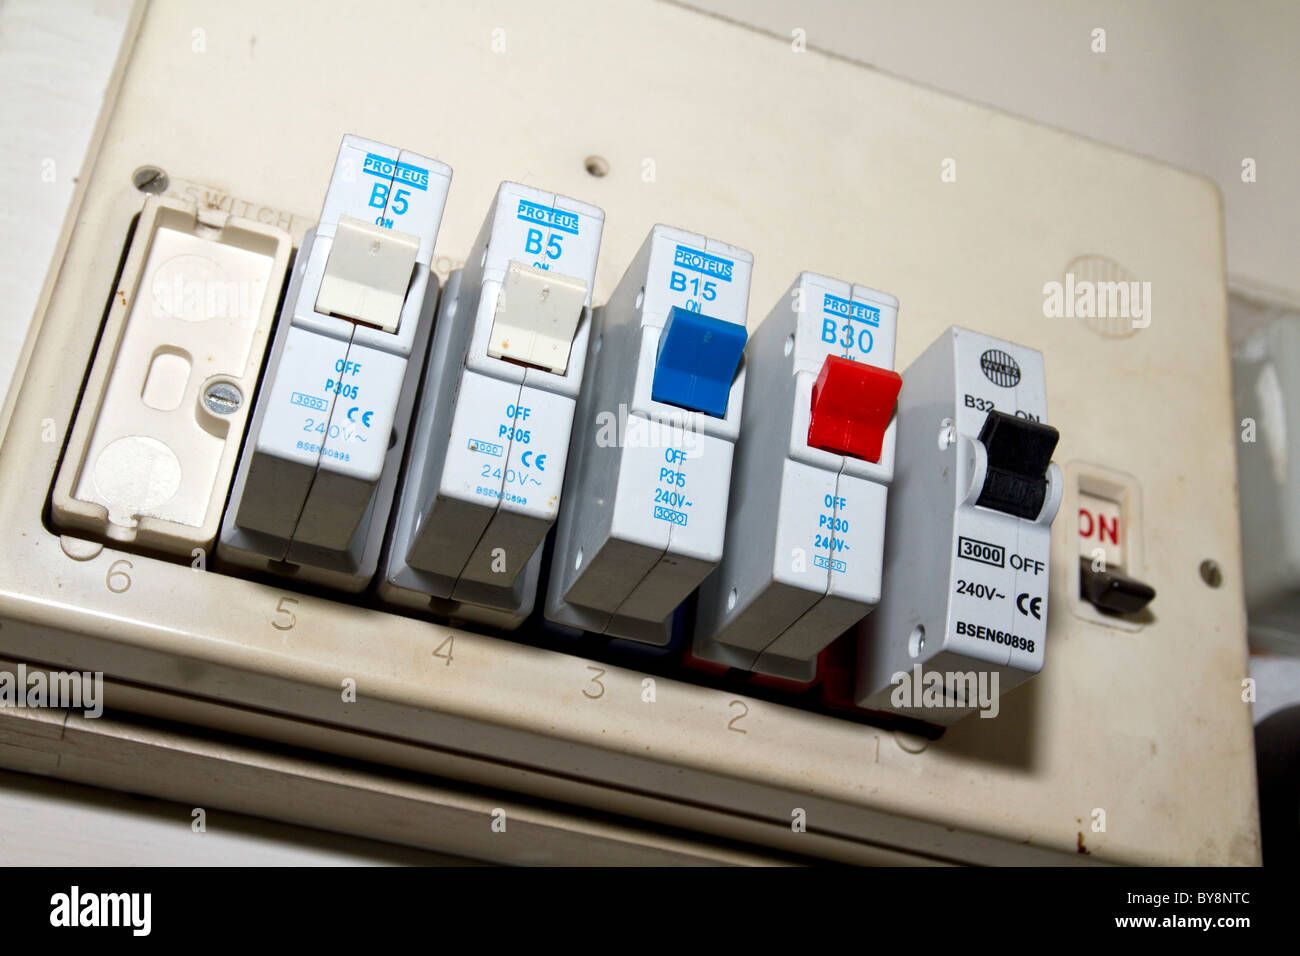 uk old electric fuse box in a london house stock photo royalty old electric fuse box in a london house